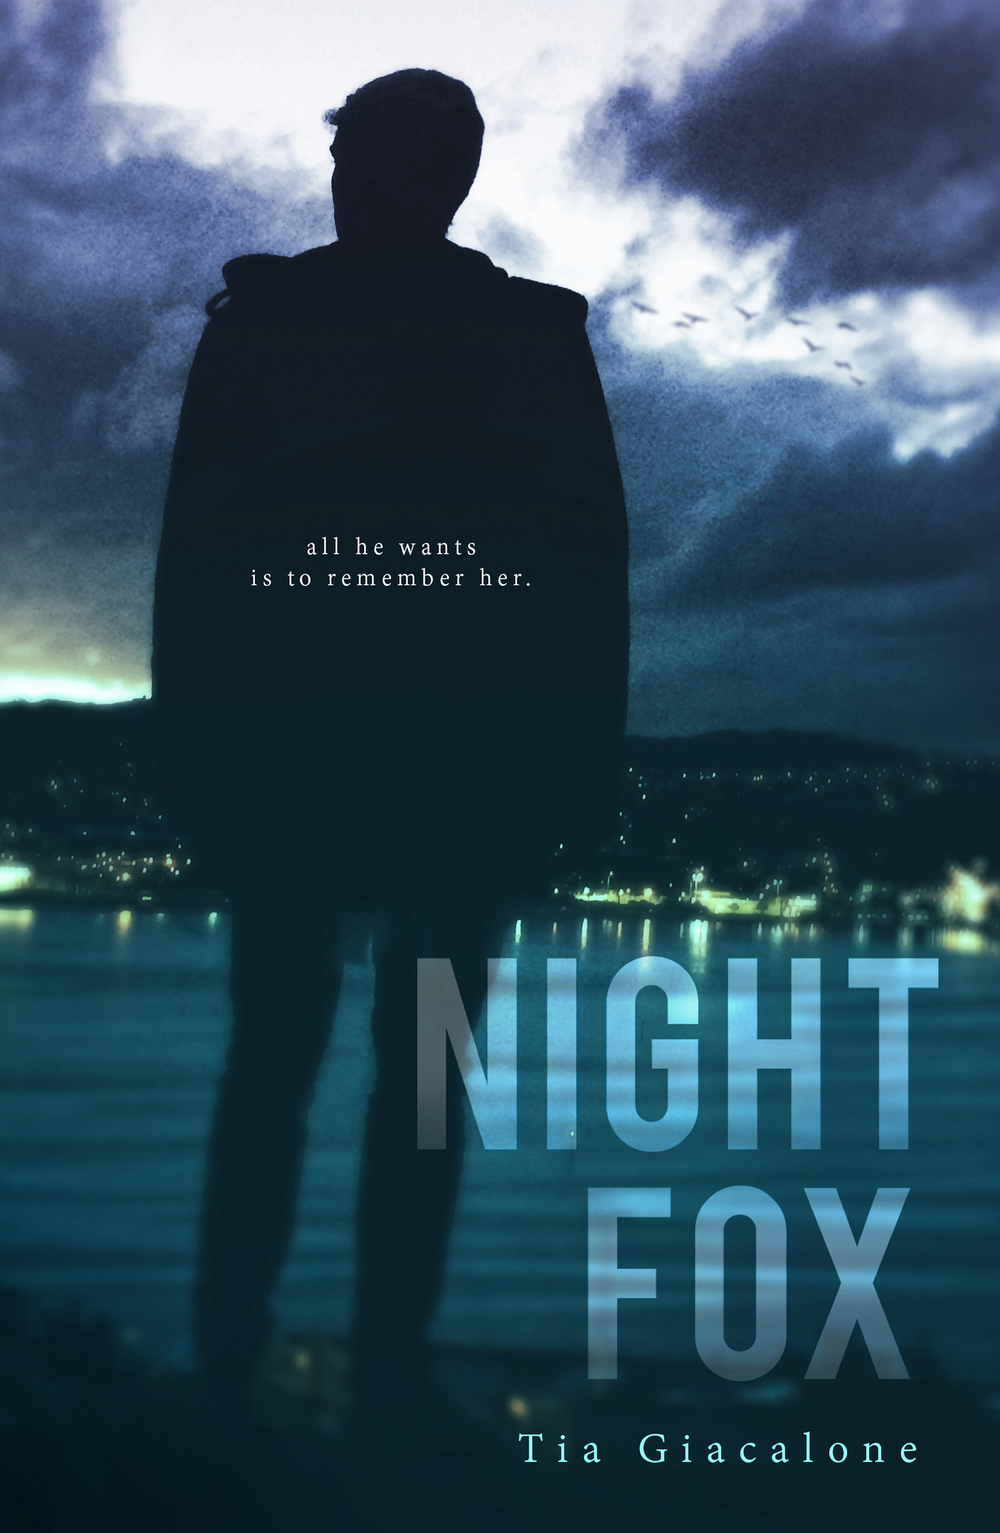 Night Fox by Tia Giacalone